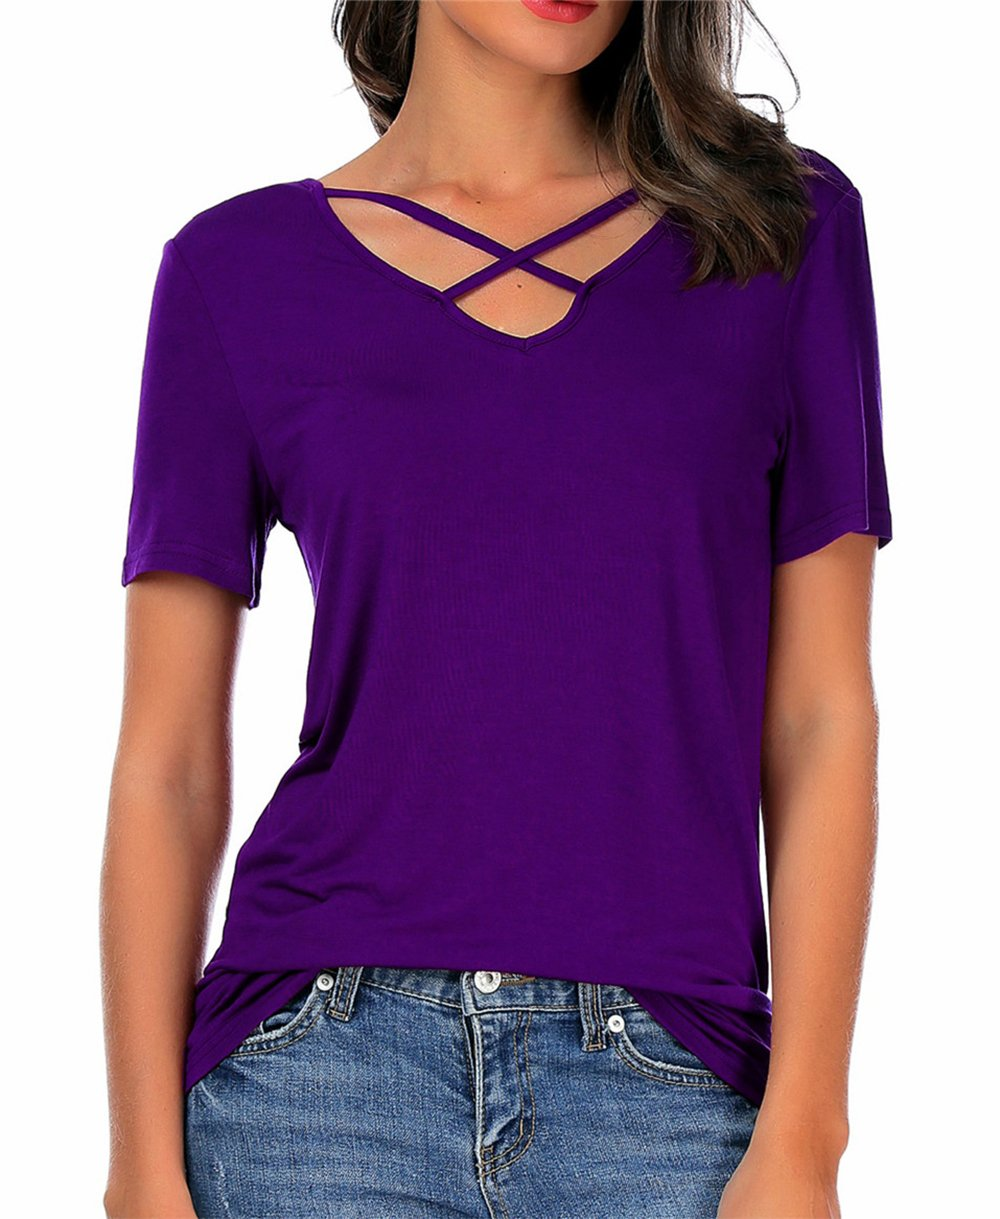 CPOKRTWSO Women Summer Tops Cross Front Deep V-Neck Long Sleeve Tees Top,A2-purple,X-Large